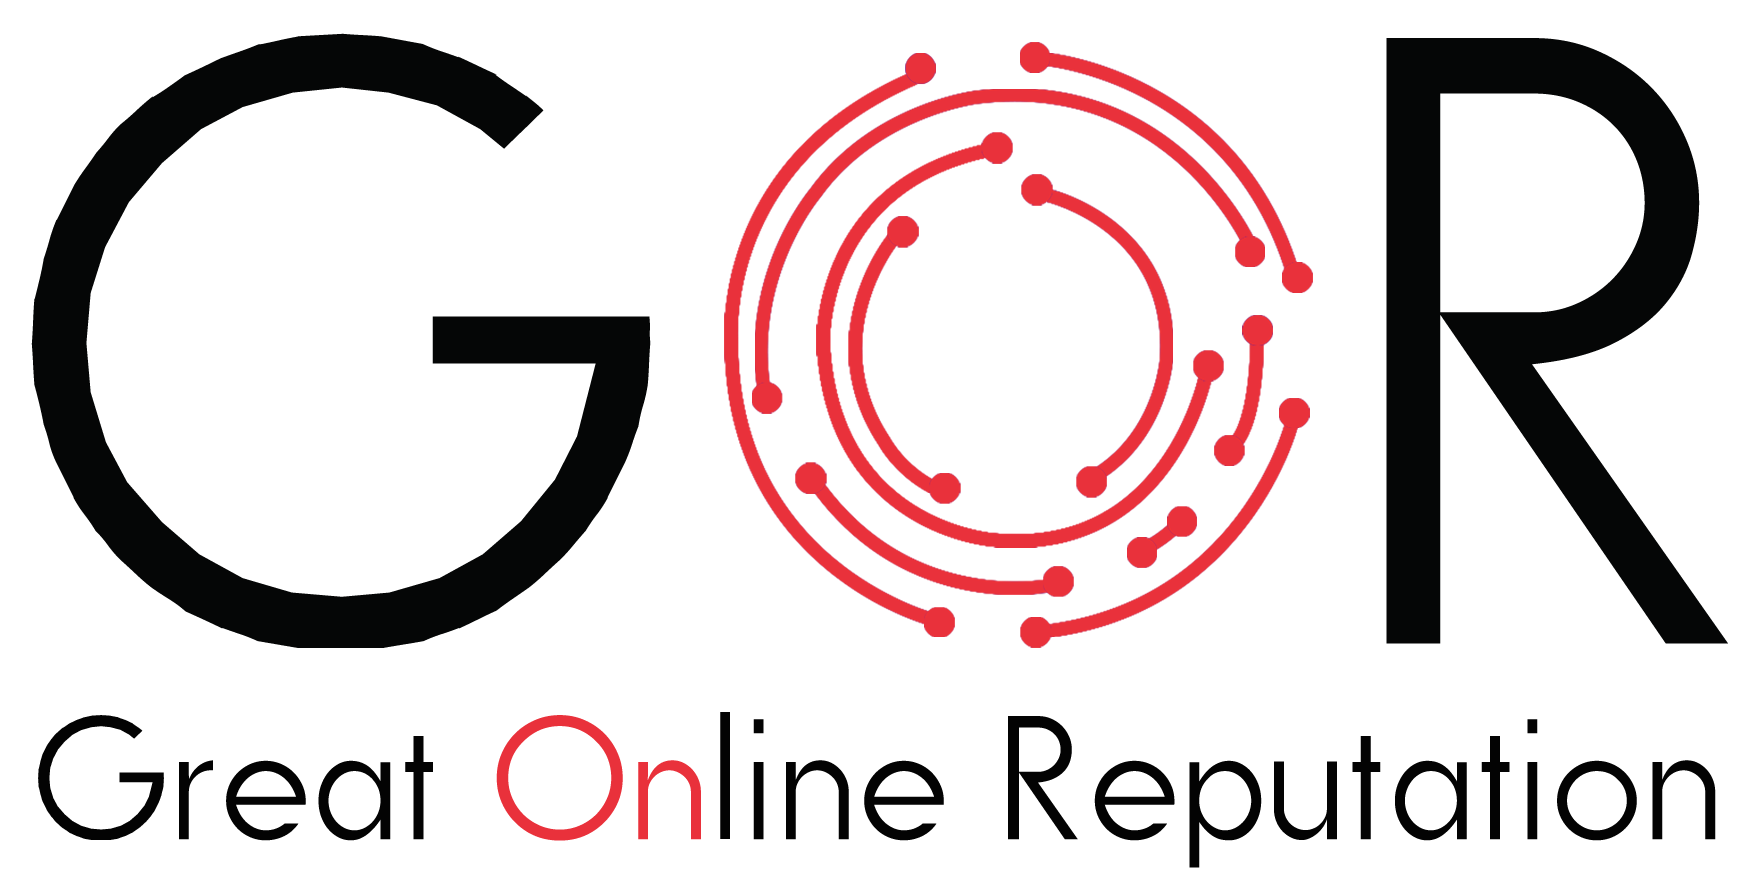 Great Online Reputations Ltd.